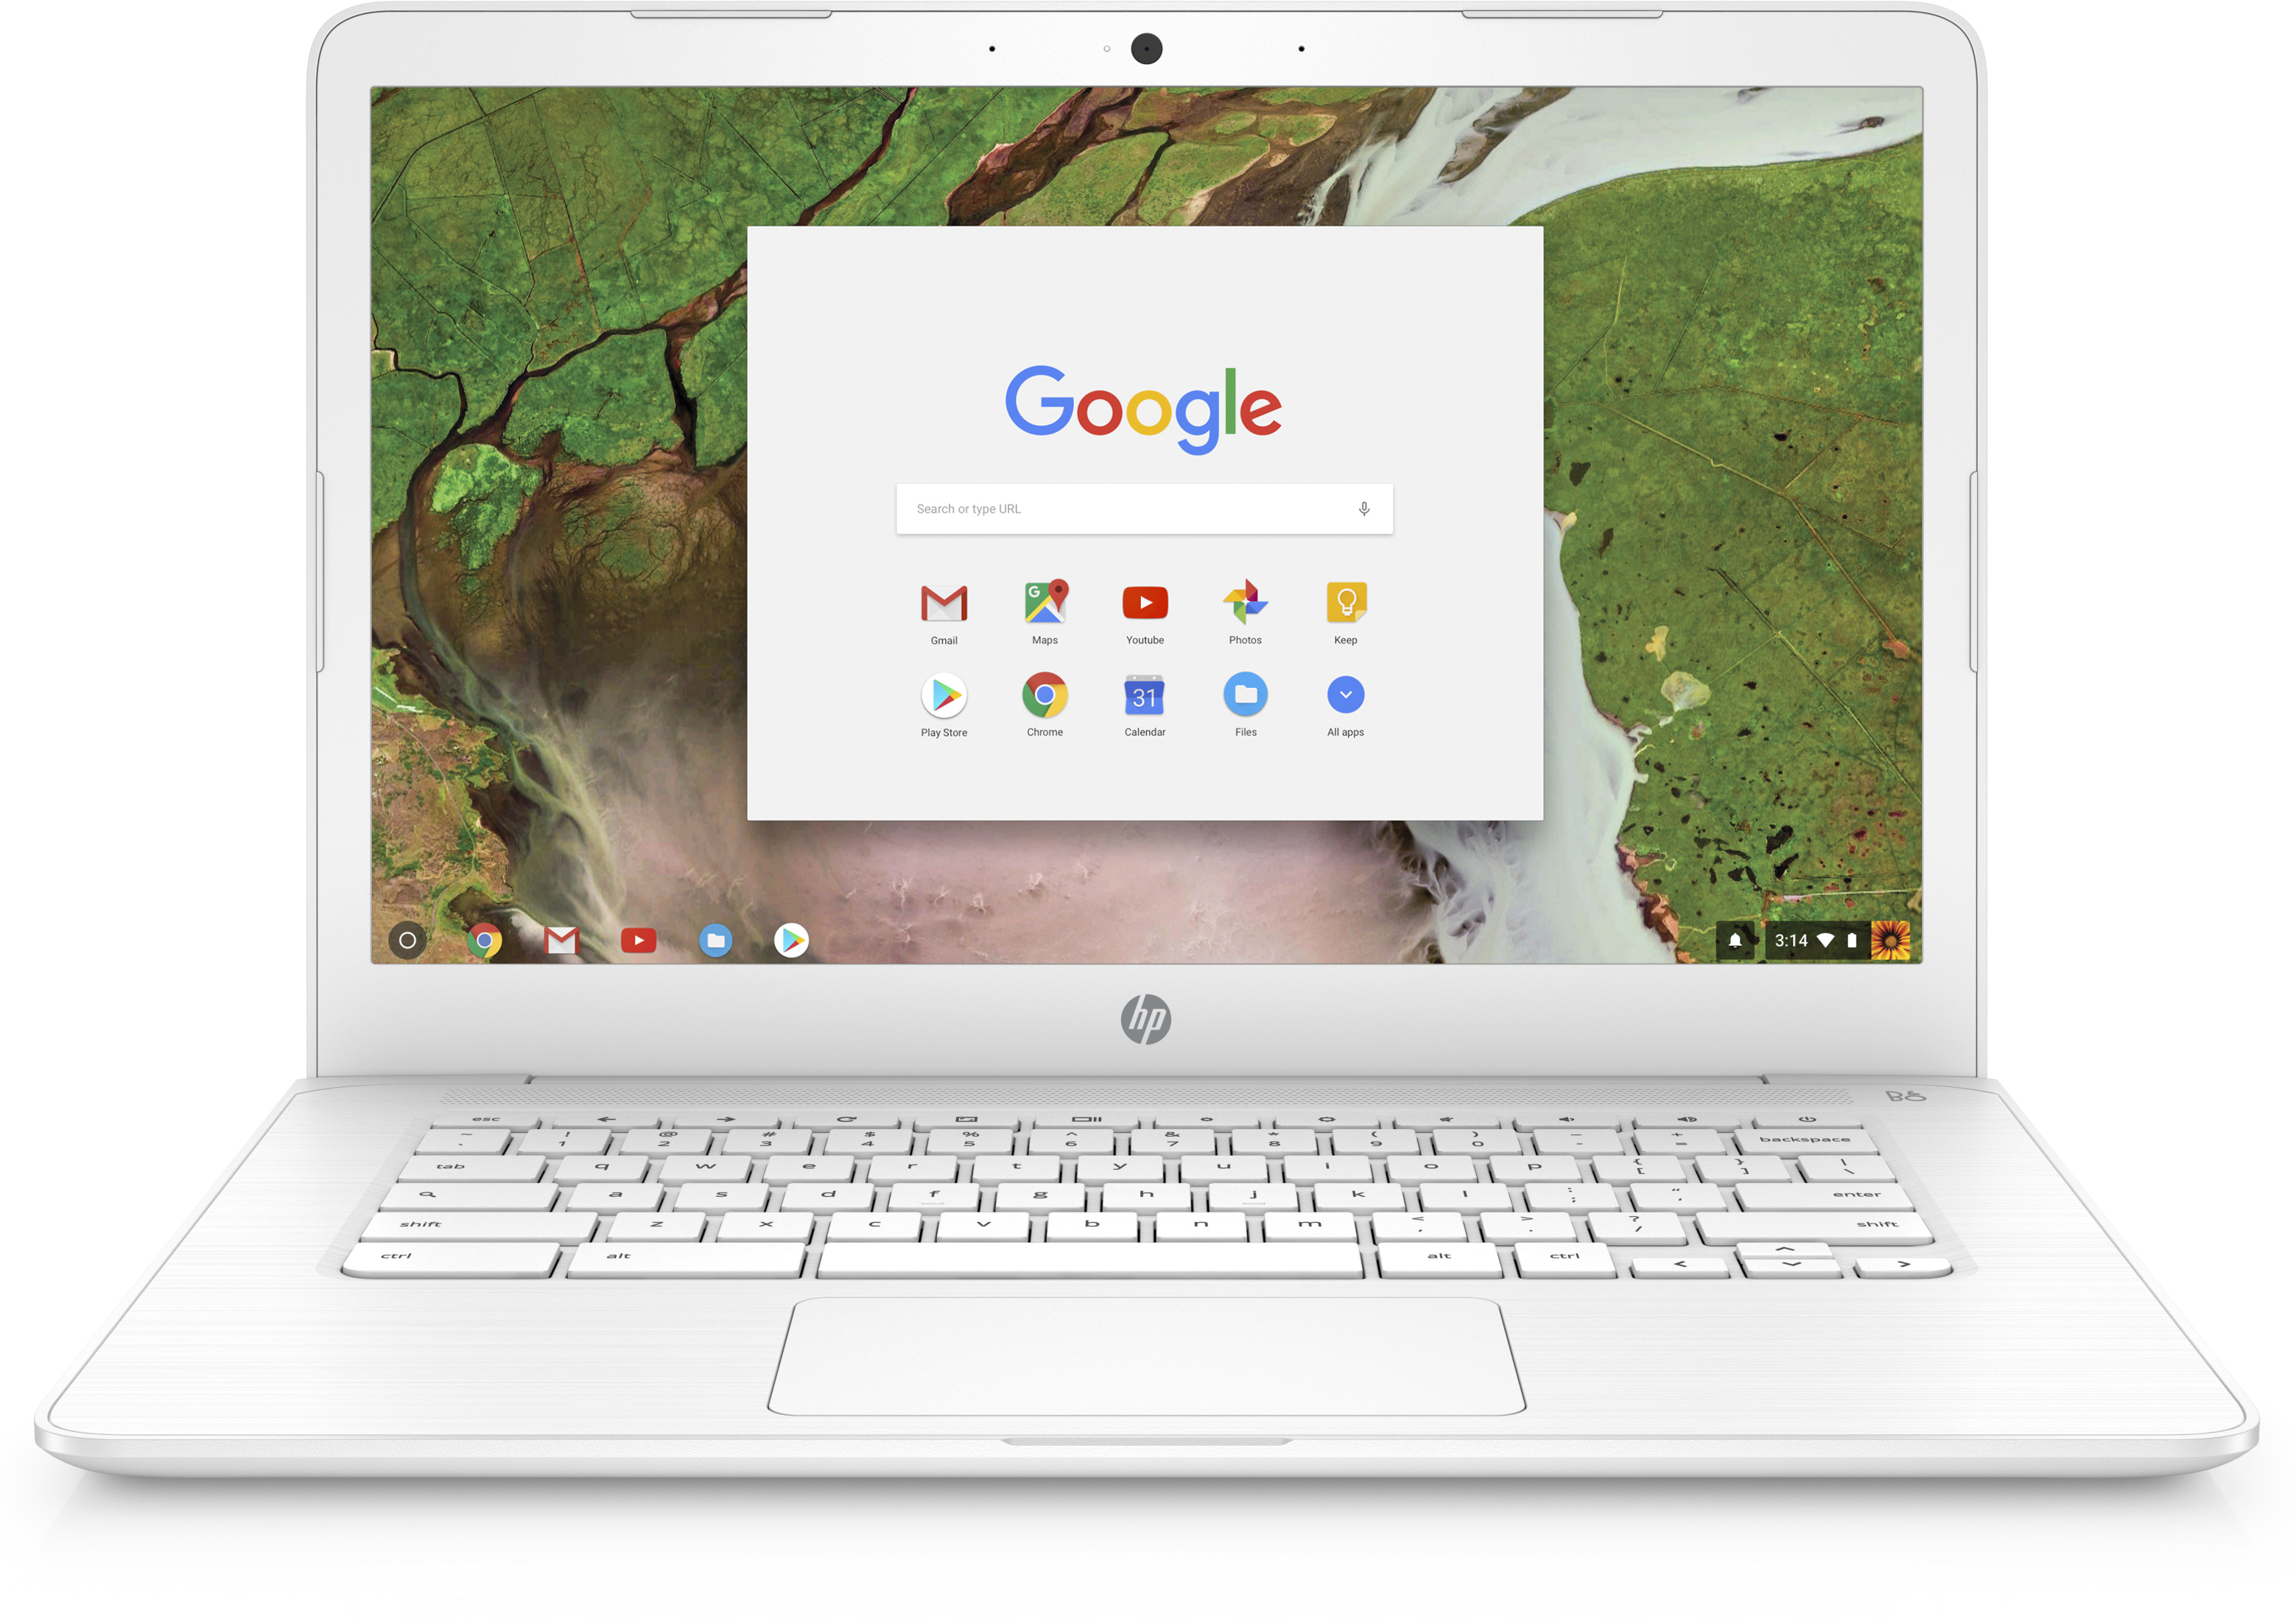 hp chromebook 14 g5 review